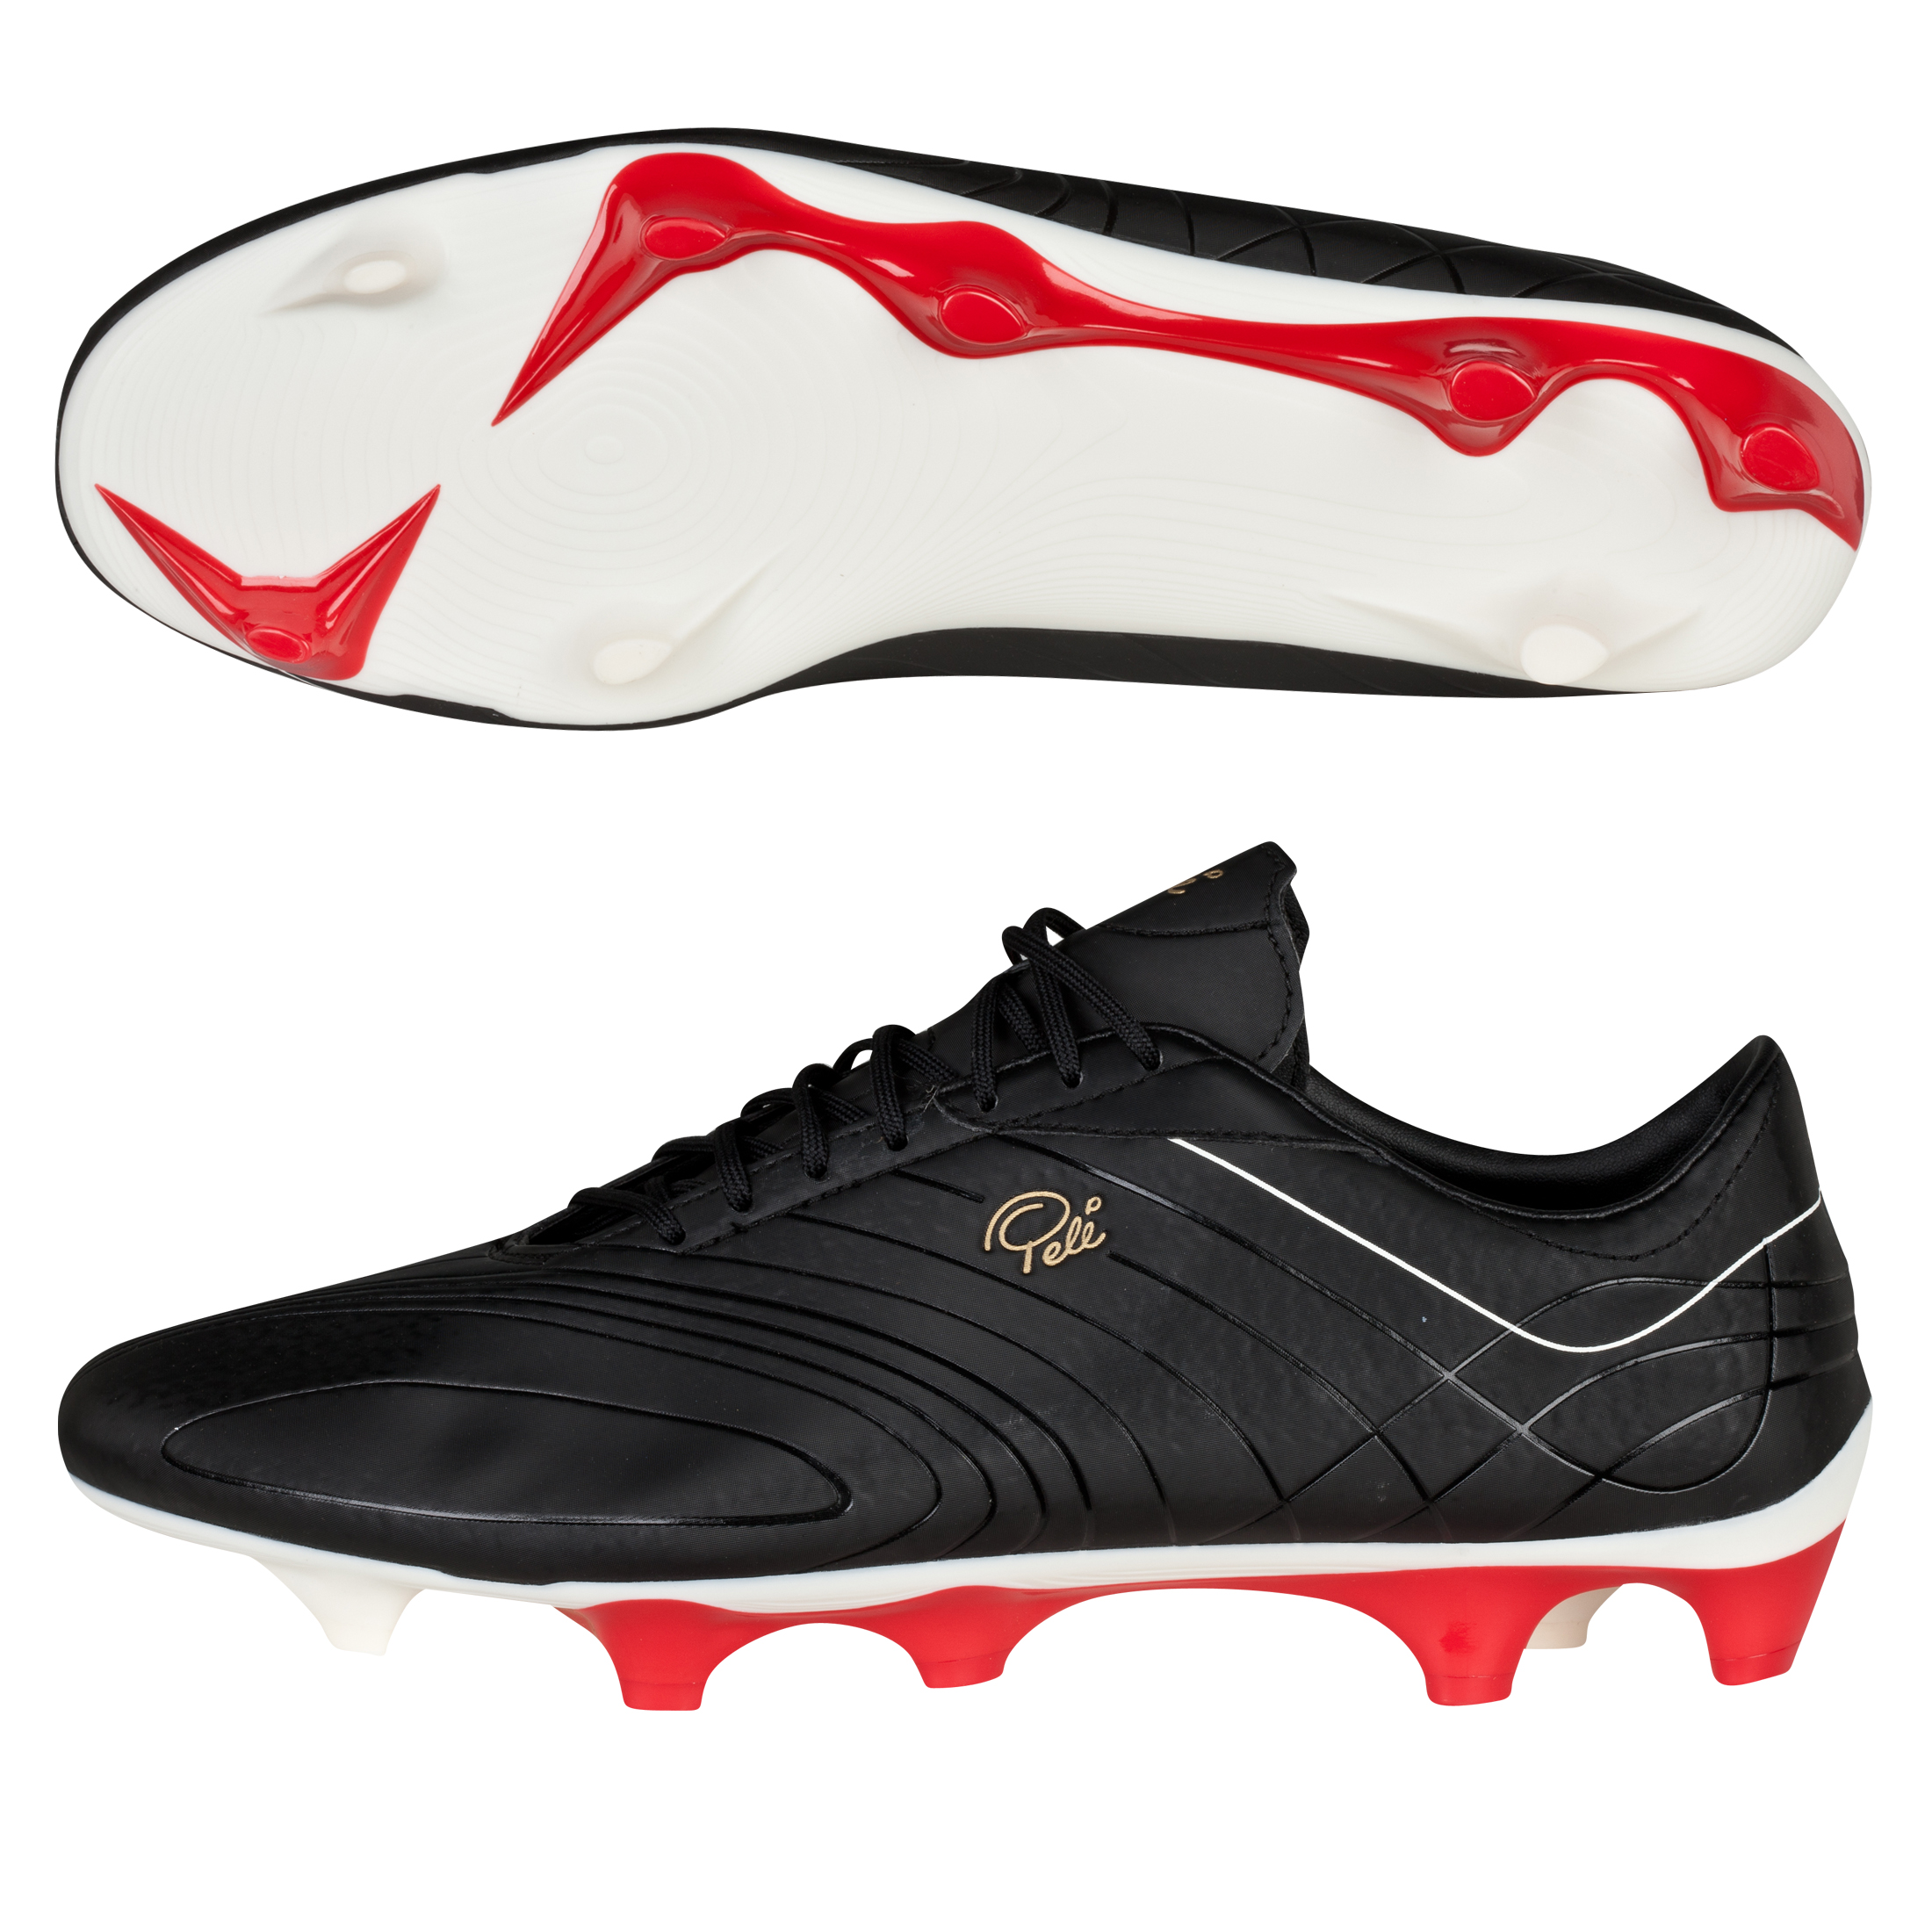 Pele Sports Galileo Firm Ground Football Boots - Black/White/High Risk Red/Rich Gold